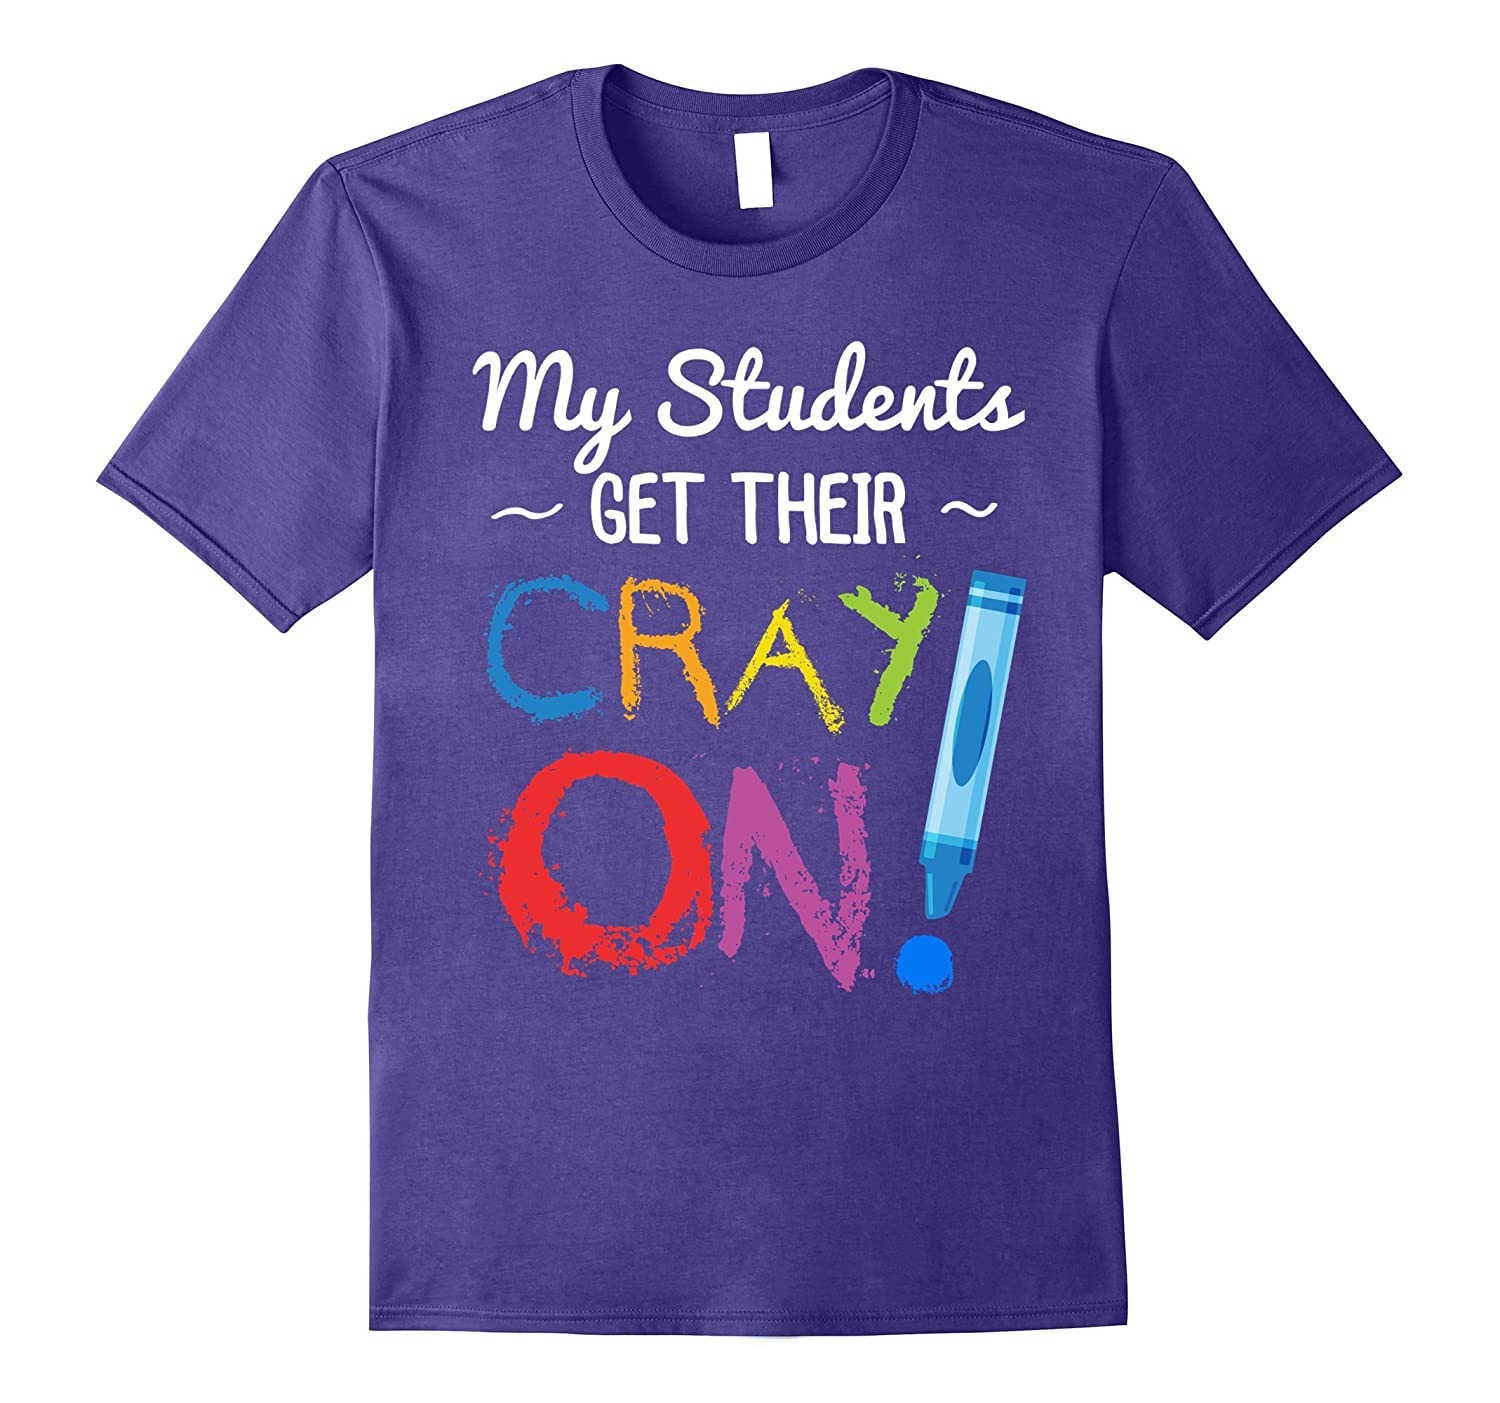 My Students Get Their Cray On Shirt Funny Shirt Funny Tee